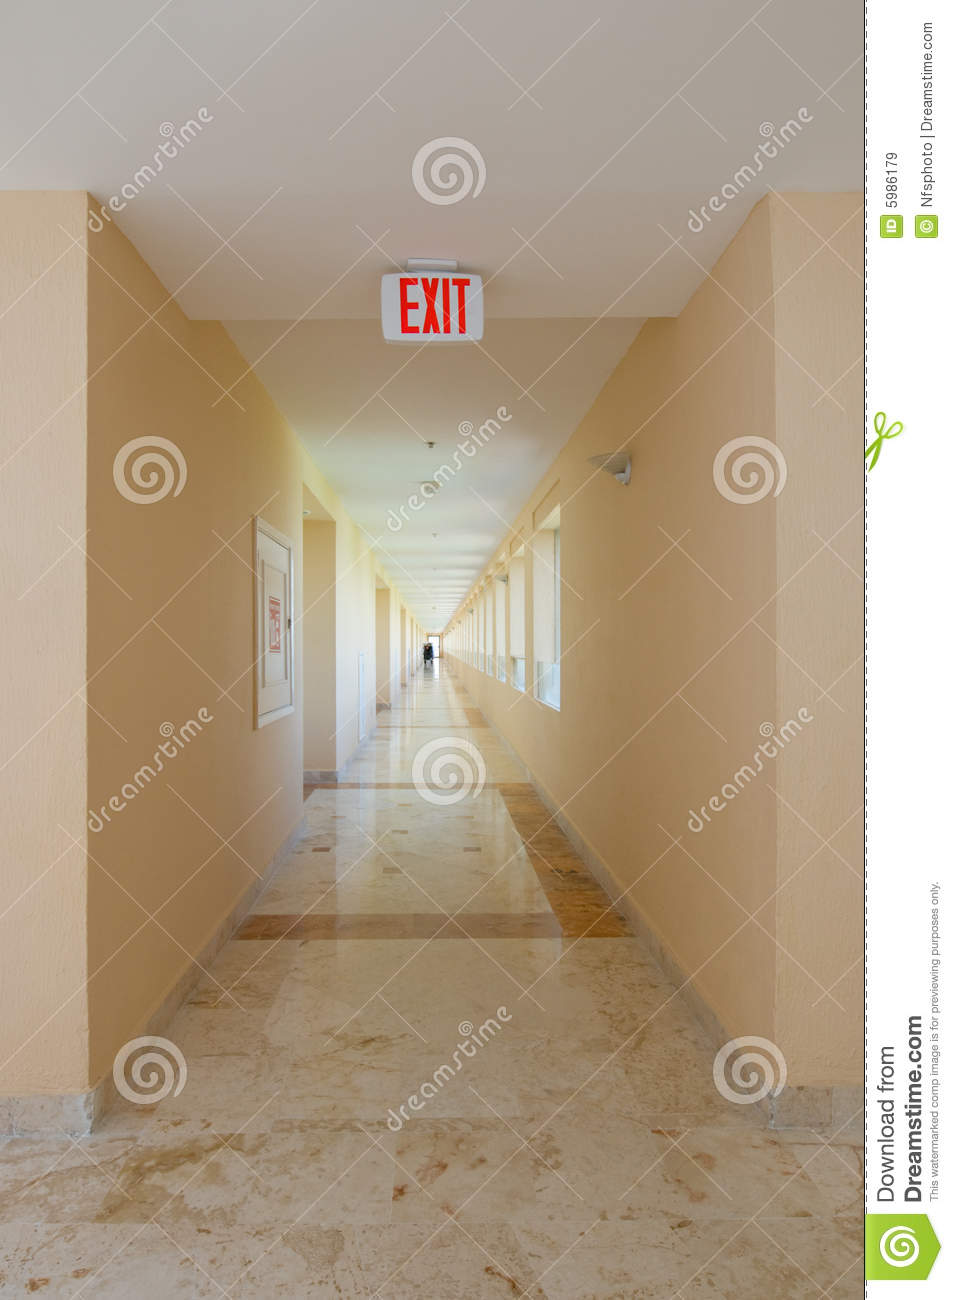 Emergency Exit Sign In Hallway Royalty Free Stock Images